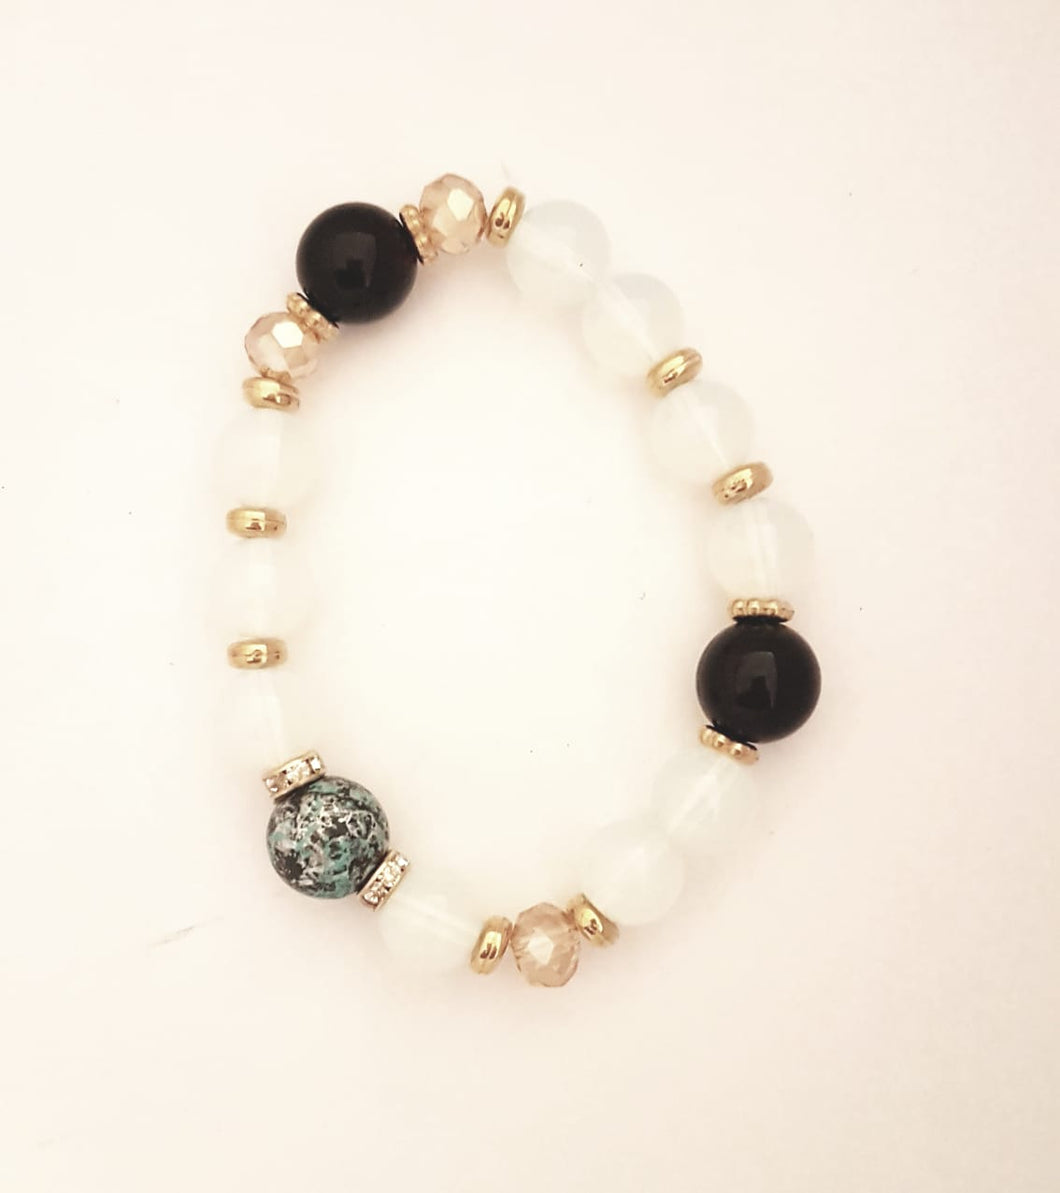 Bracelet with White and Marble Stone Detail